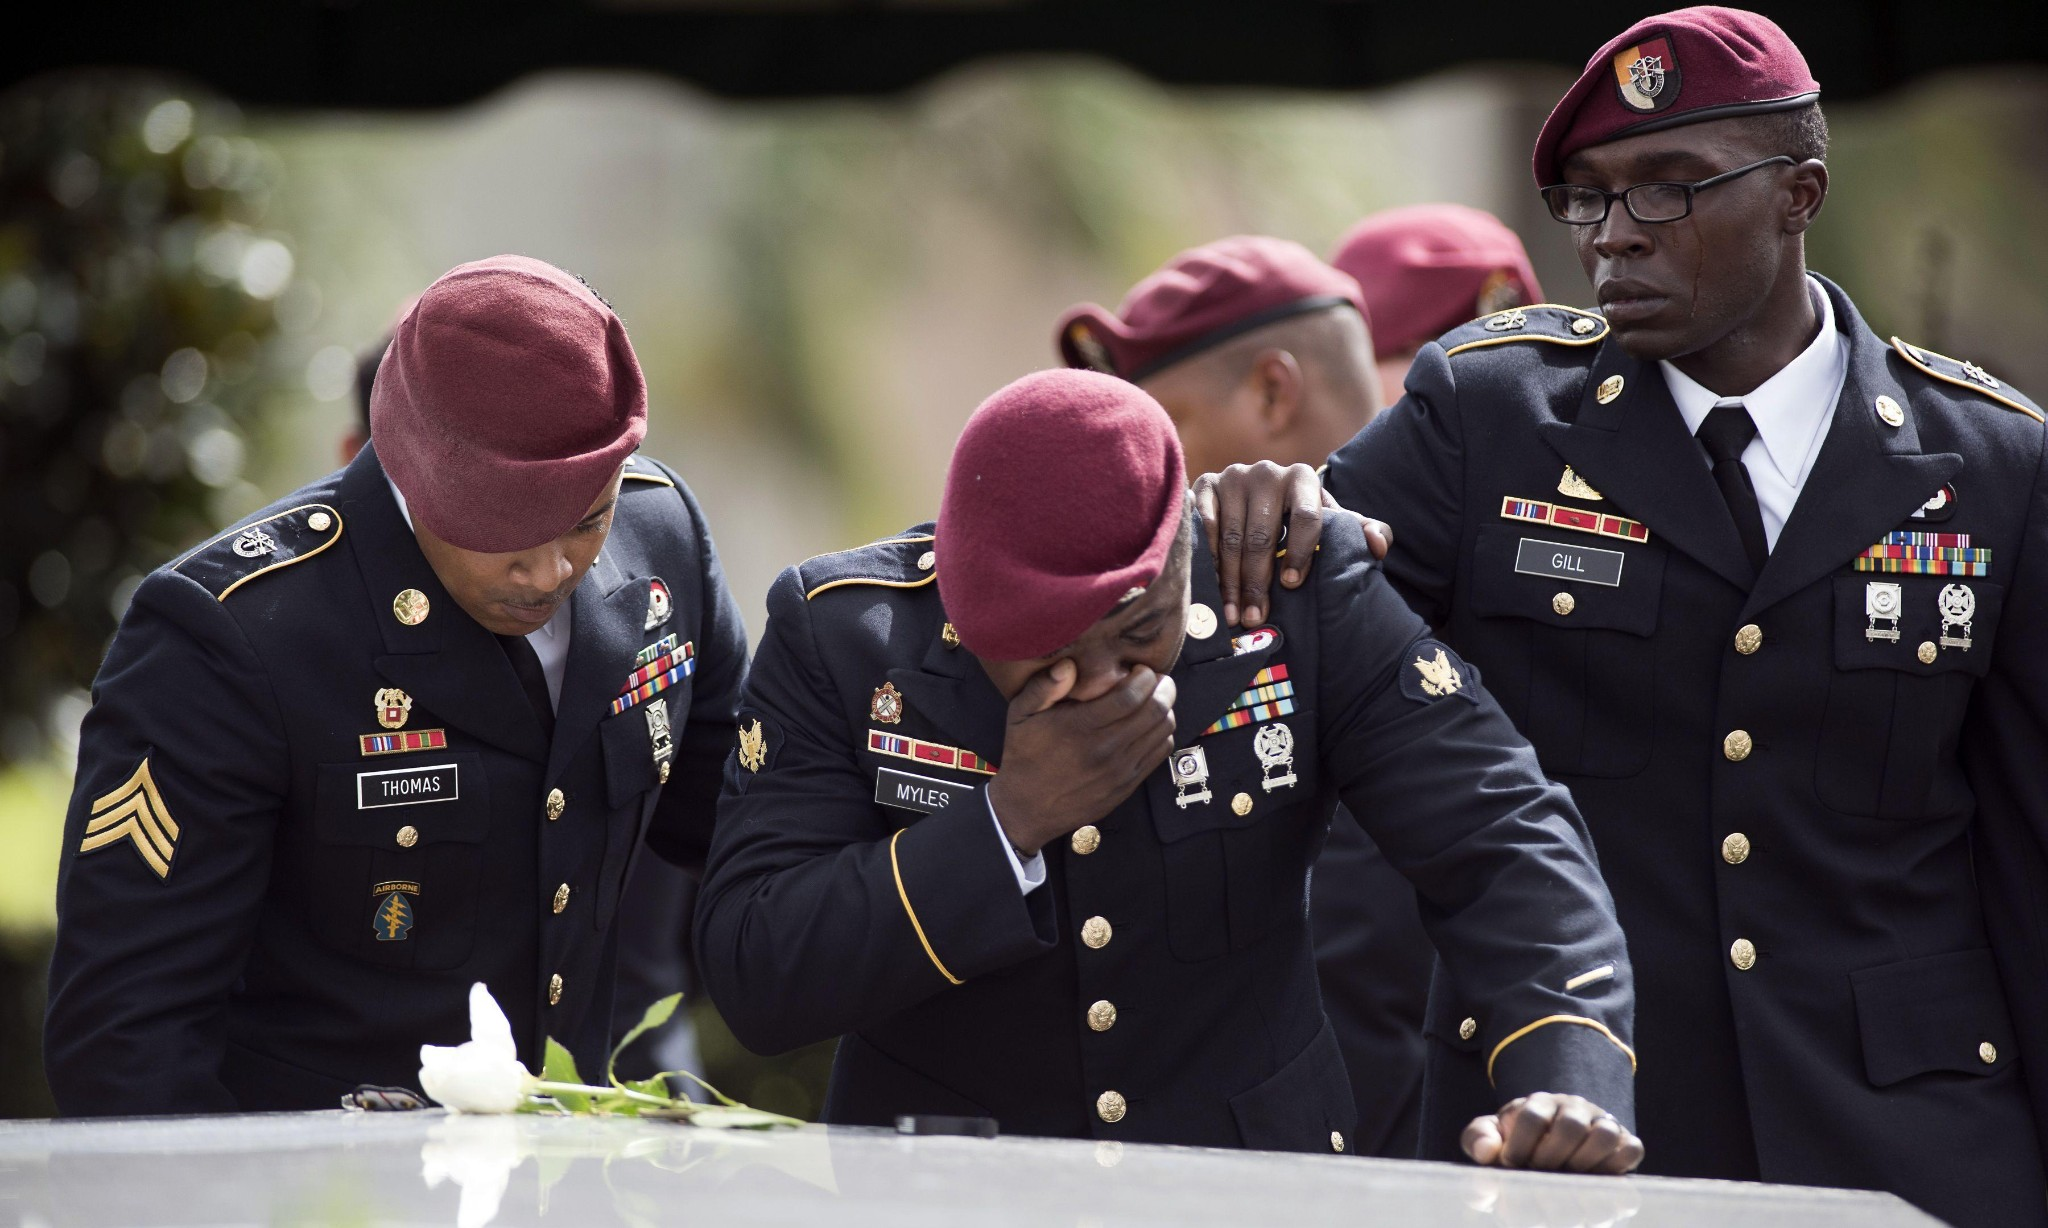 Special forces unit ambushed in Niger desperately called for help, sources say